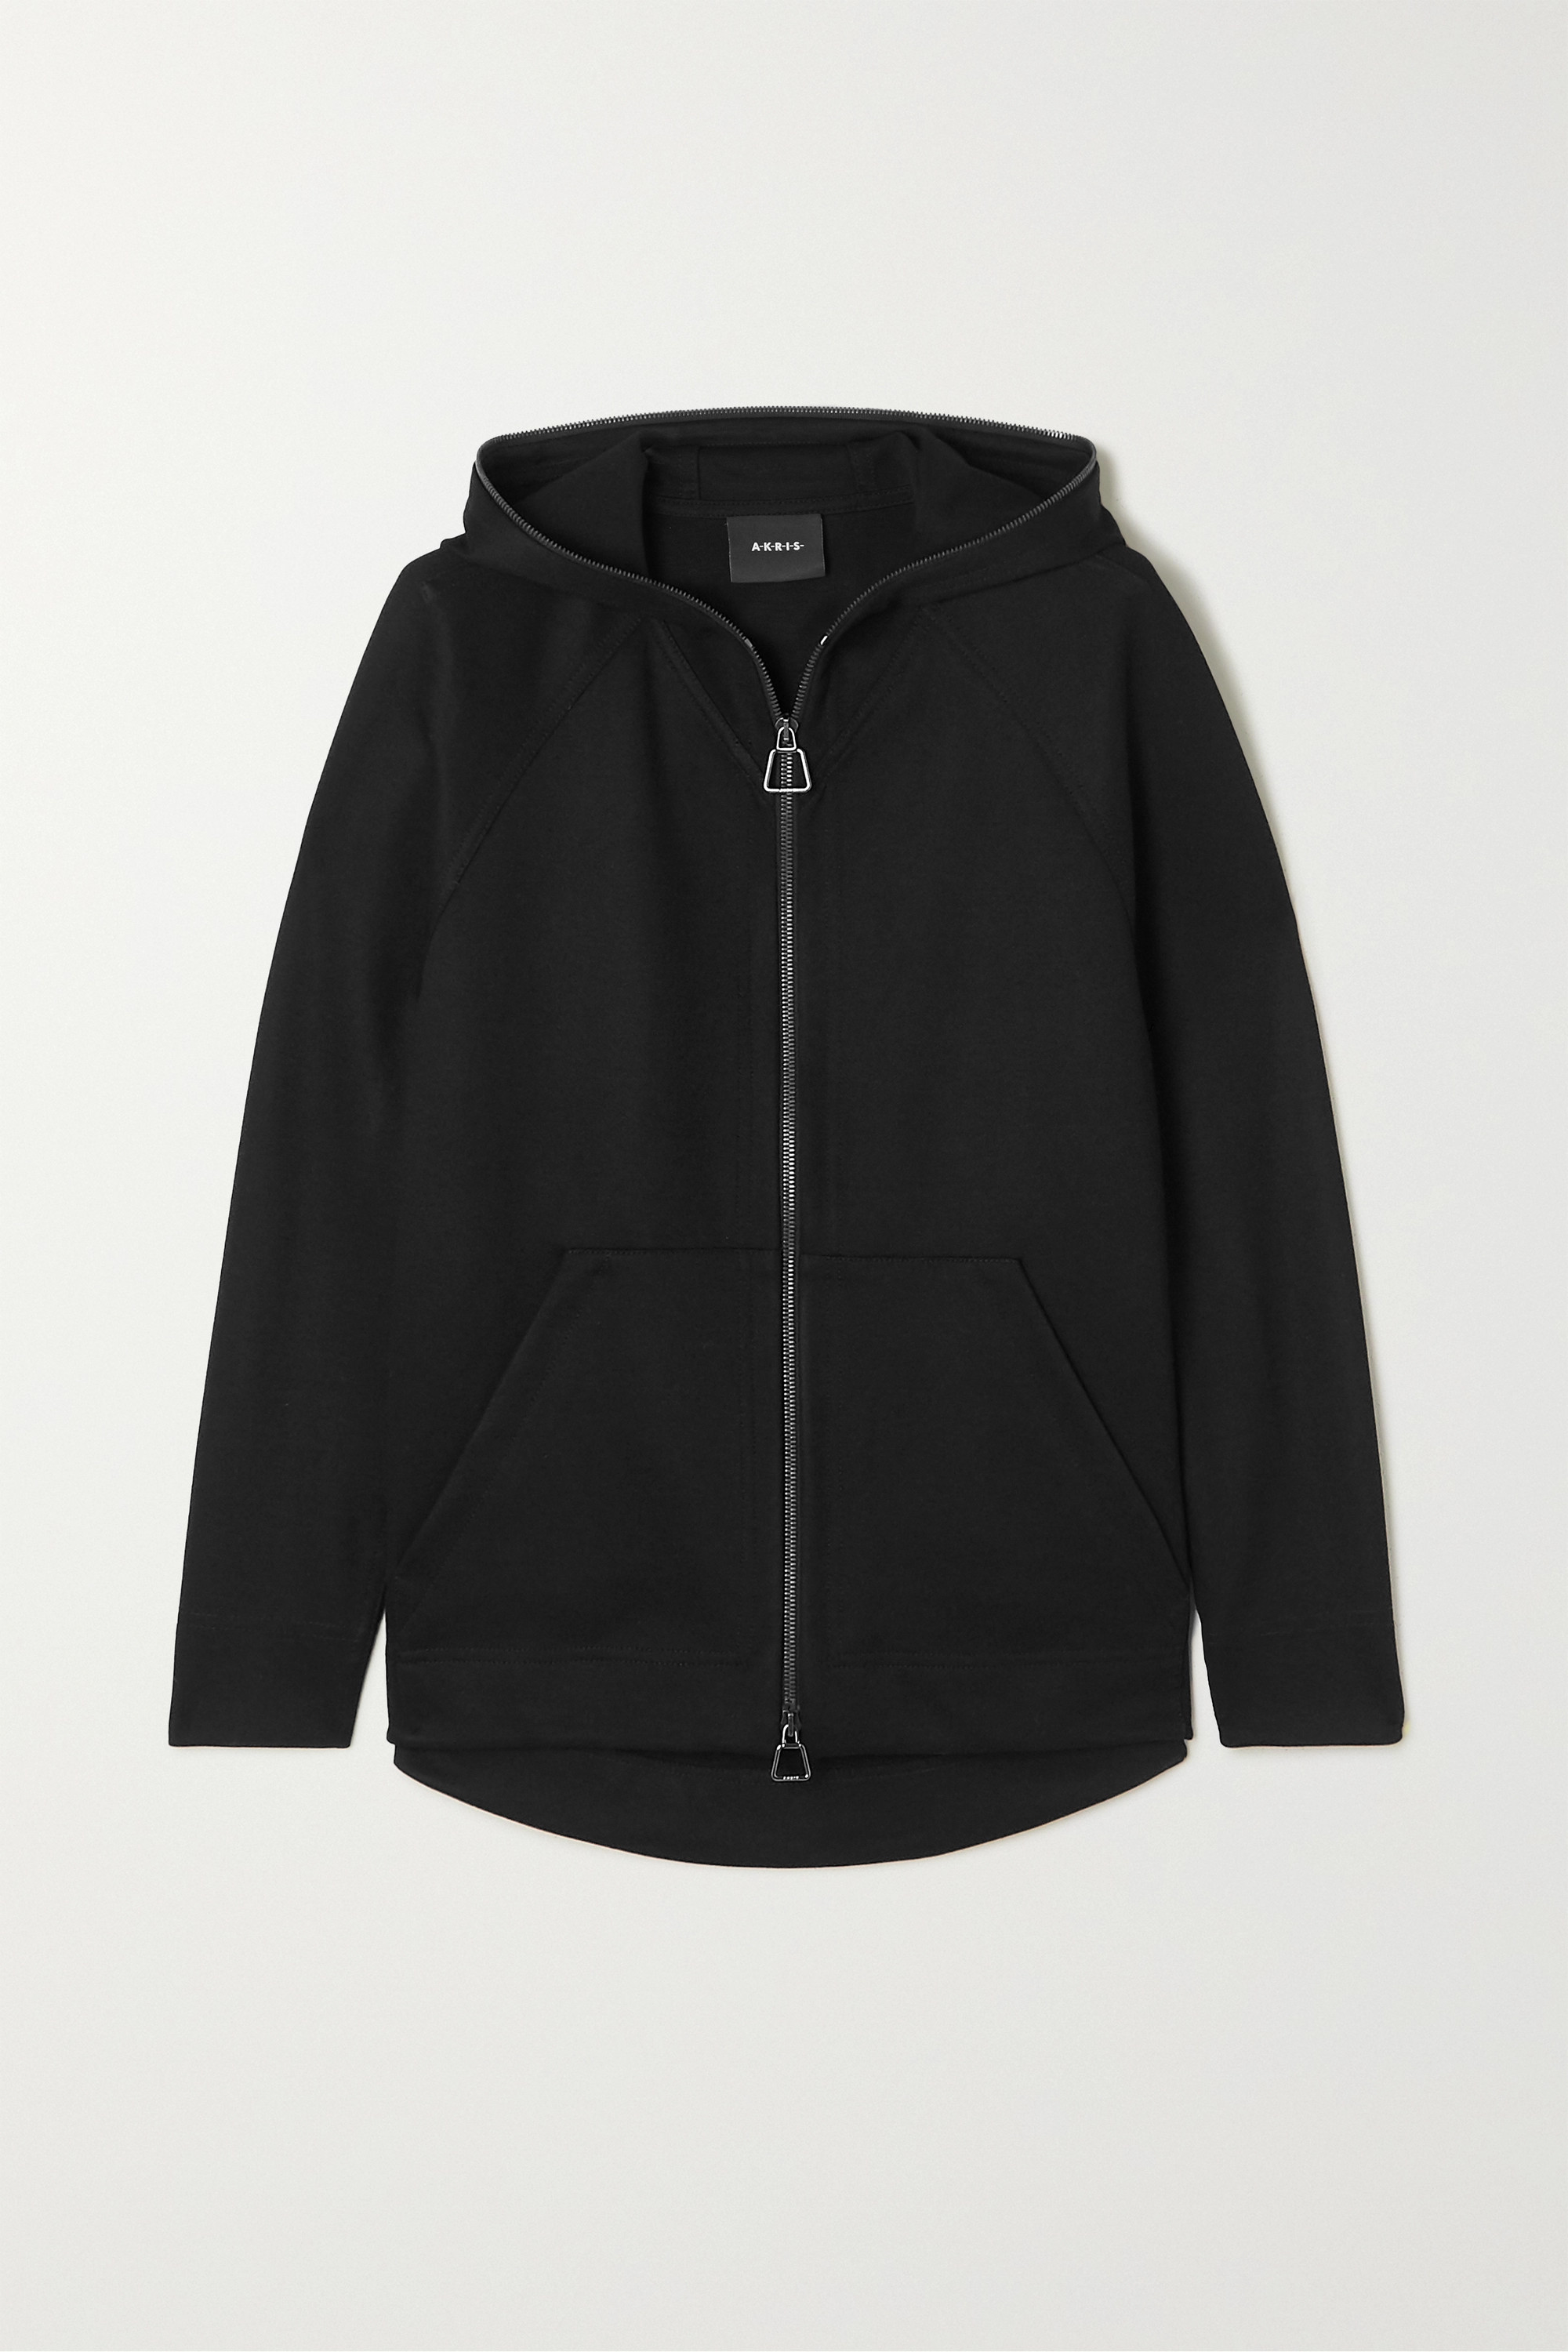 Akris Flava hooded stretch-jersey track jacket